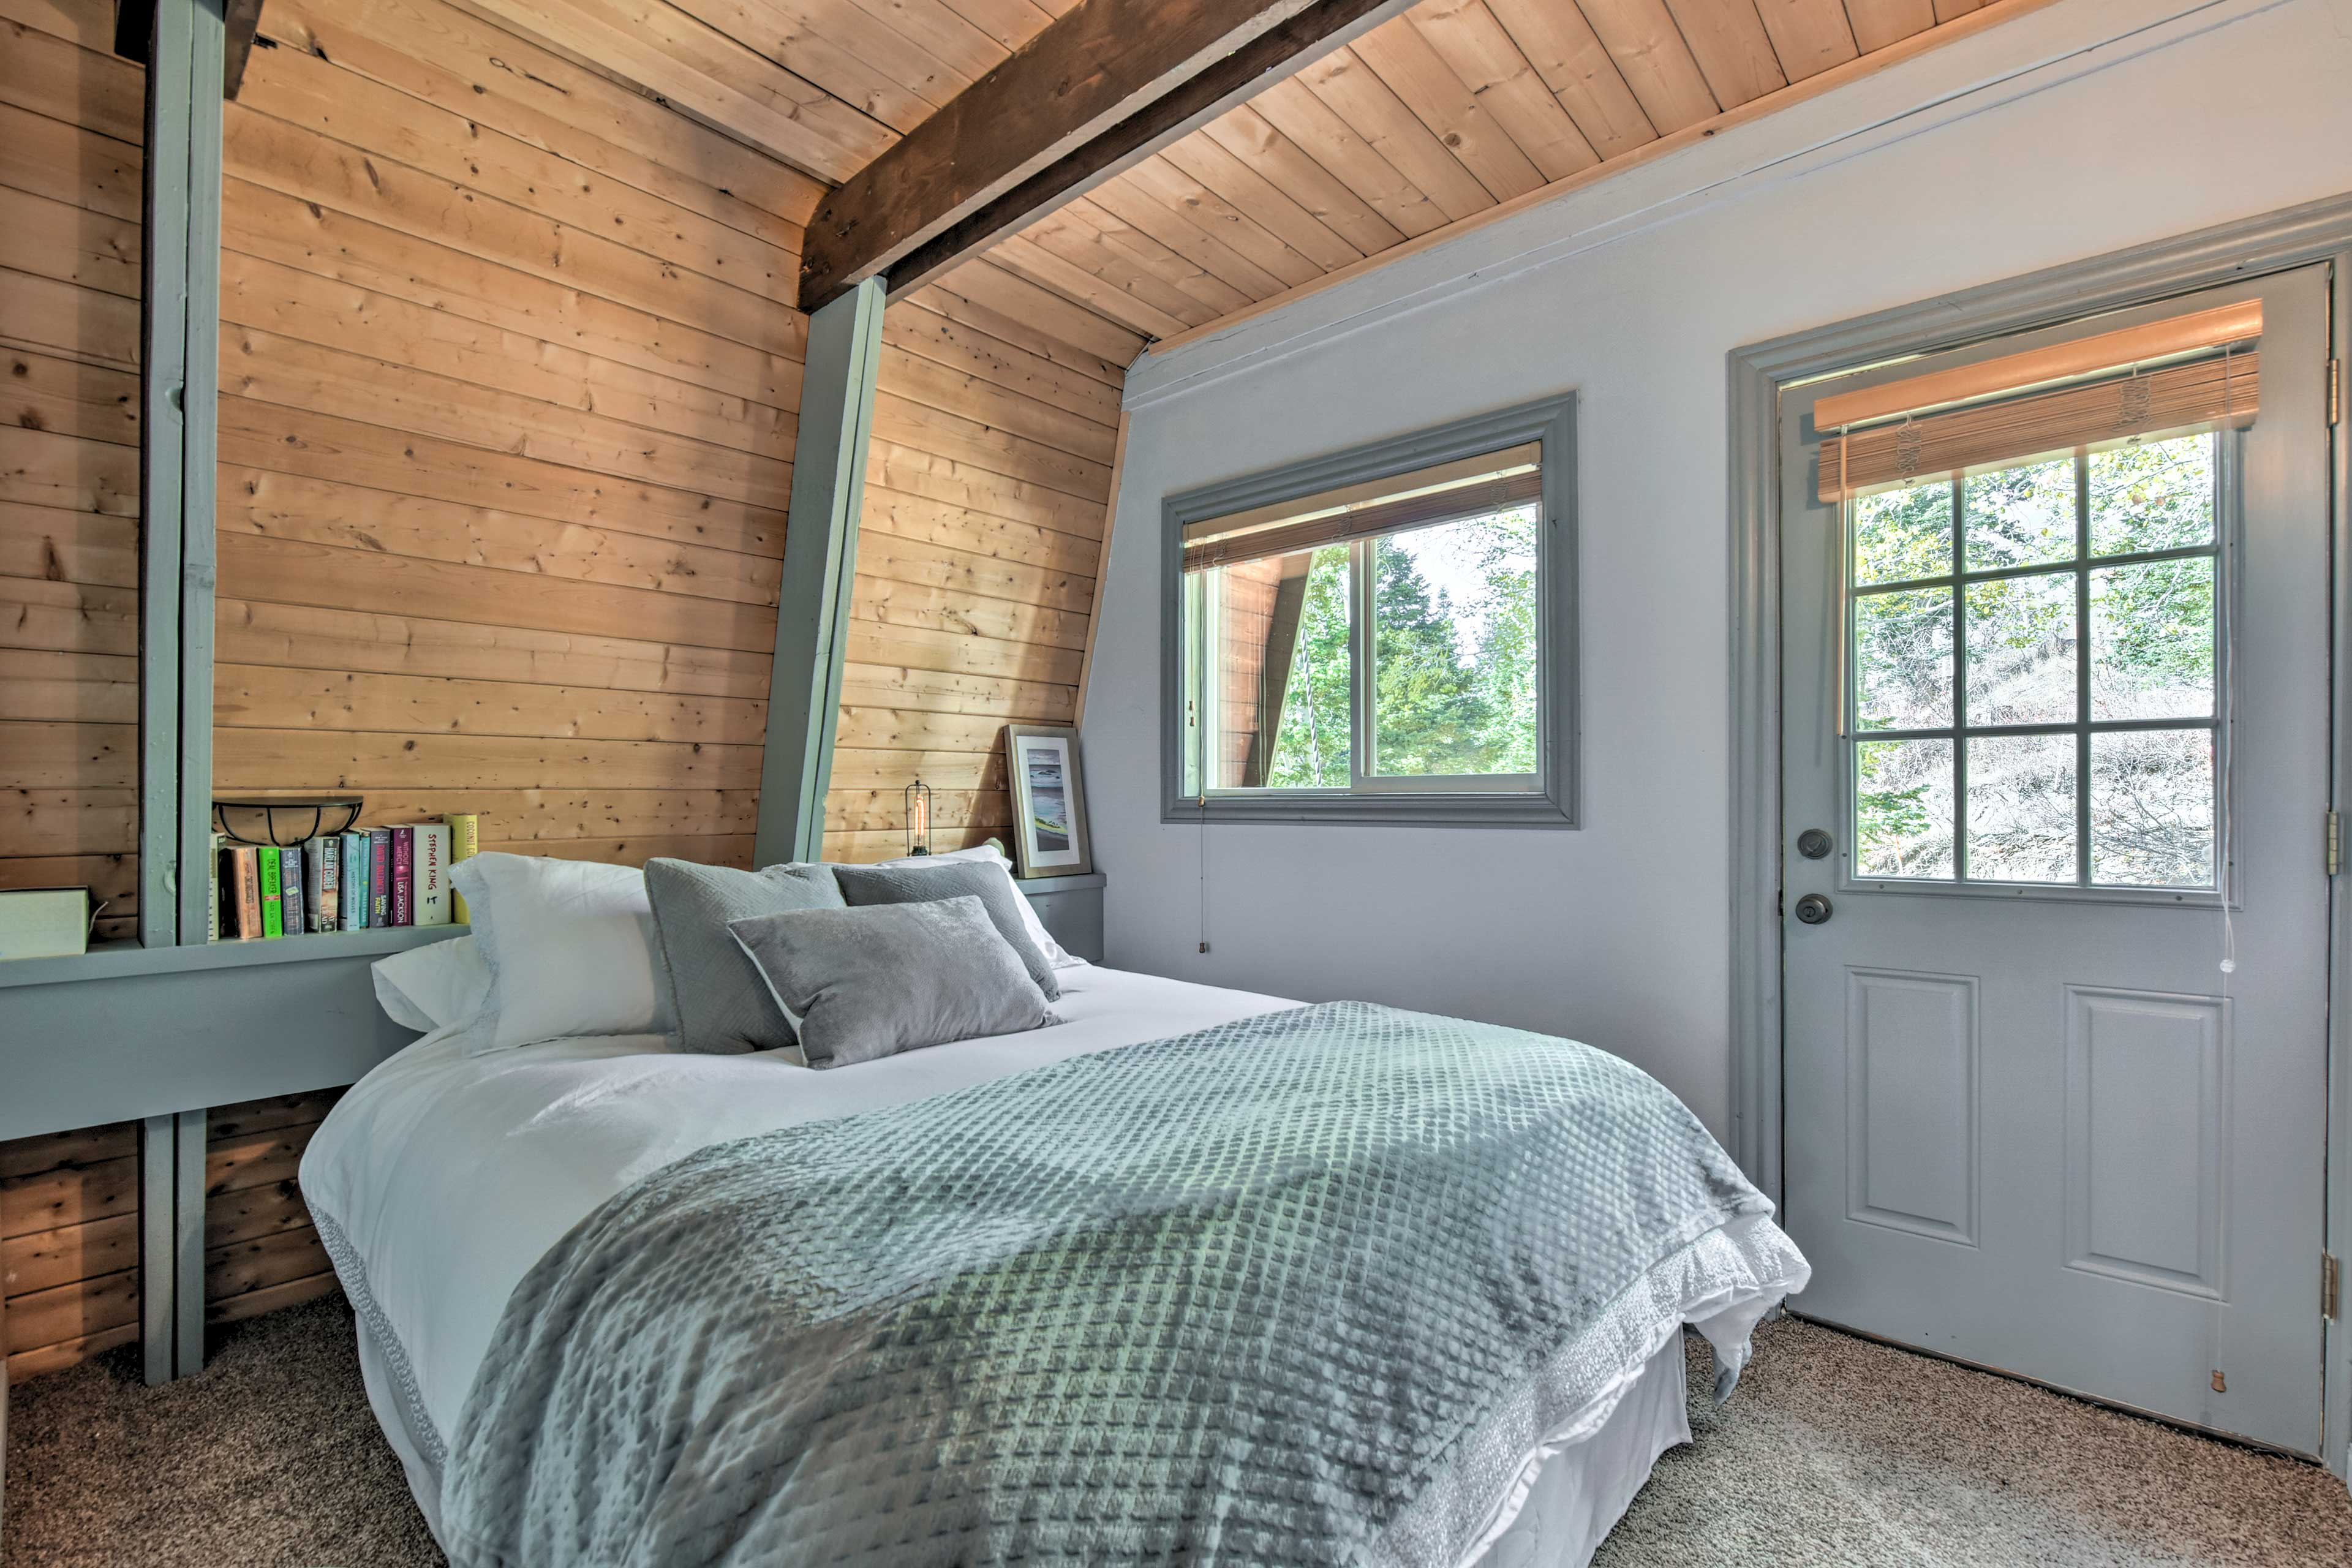 This first bedroom contains a queen bed and access to a private balcony.